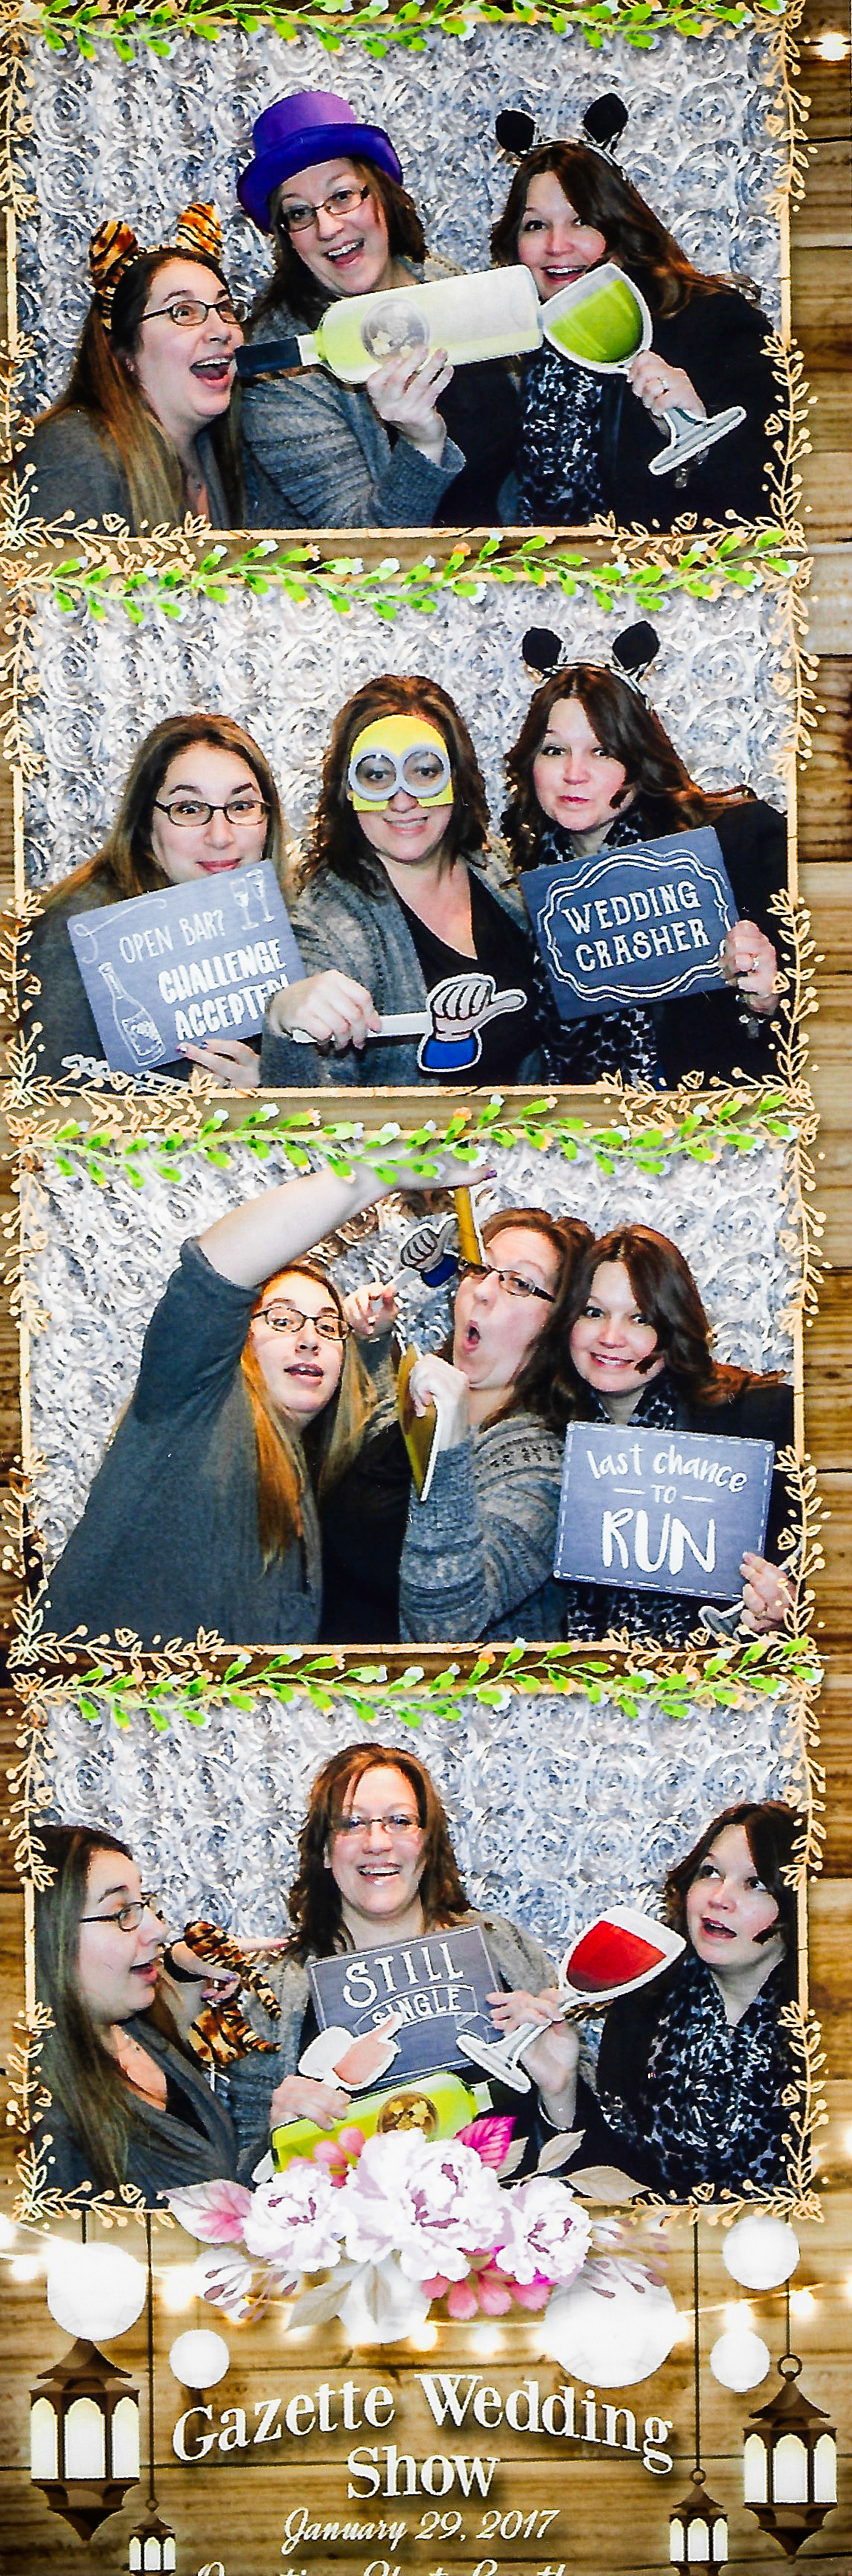 All Occasions Photography Albany NY - Wedding Photography Funny Photobooth Collage Gazette Wedding Show